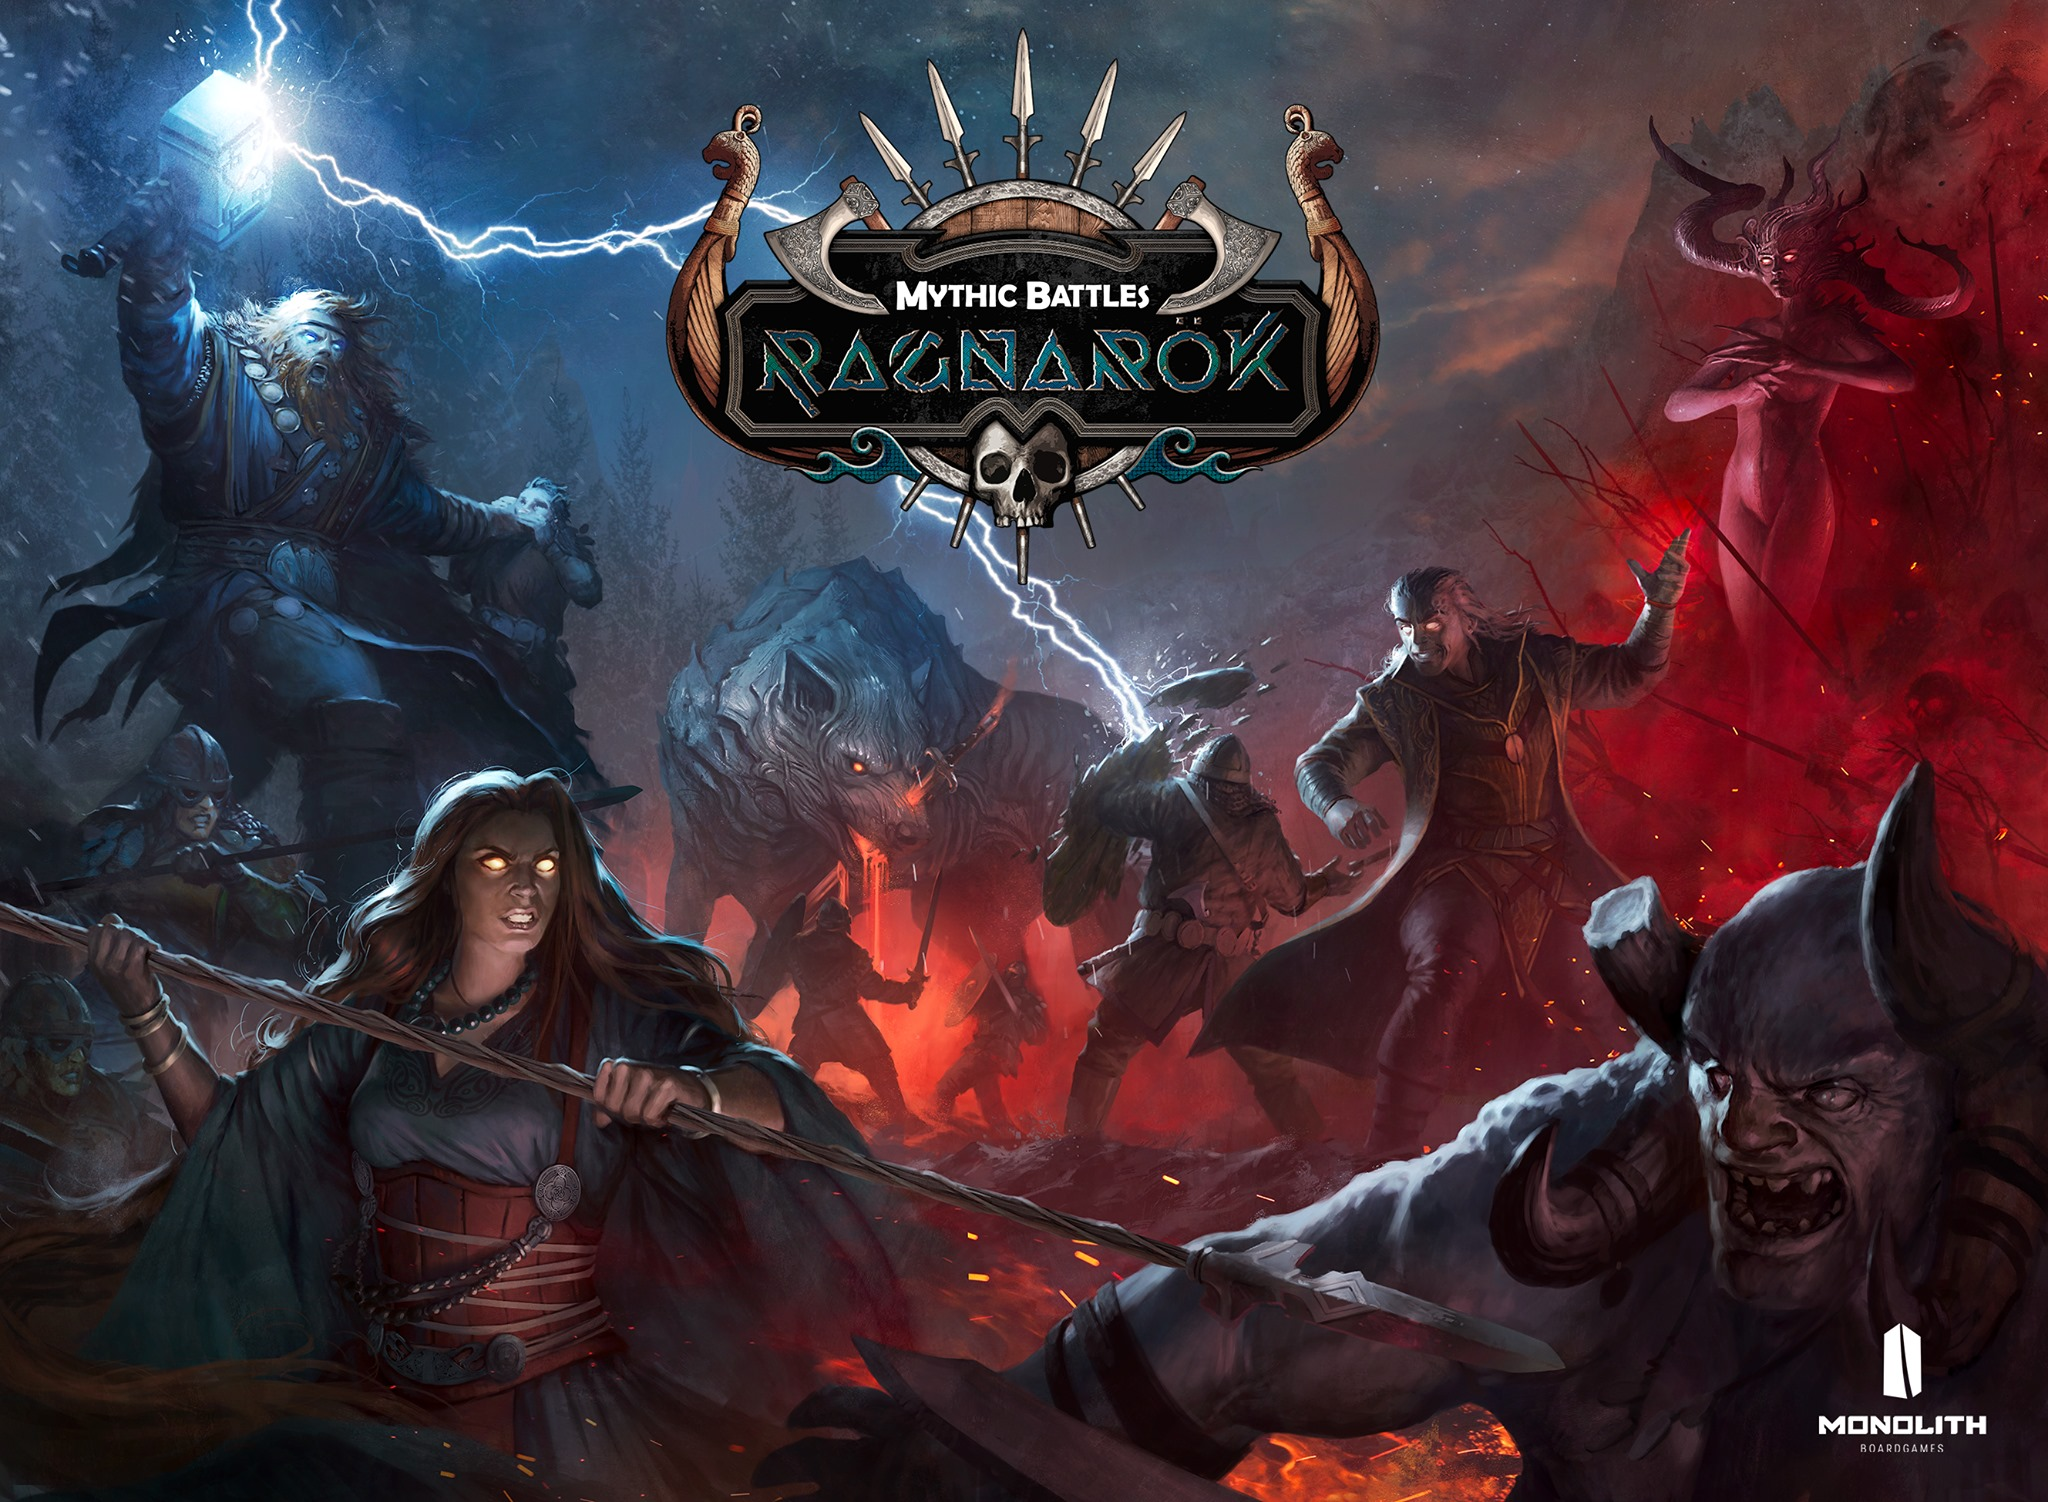 Cover Art - Mythic Battles Ragnarok